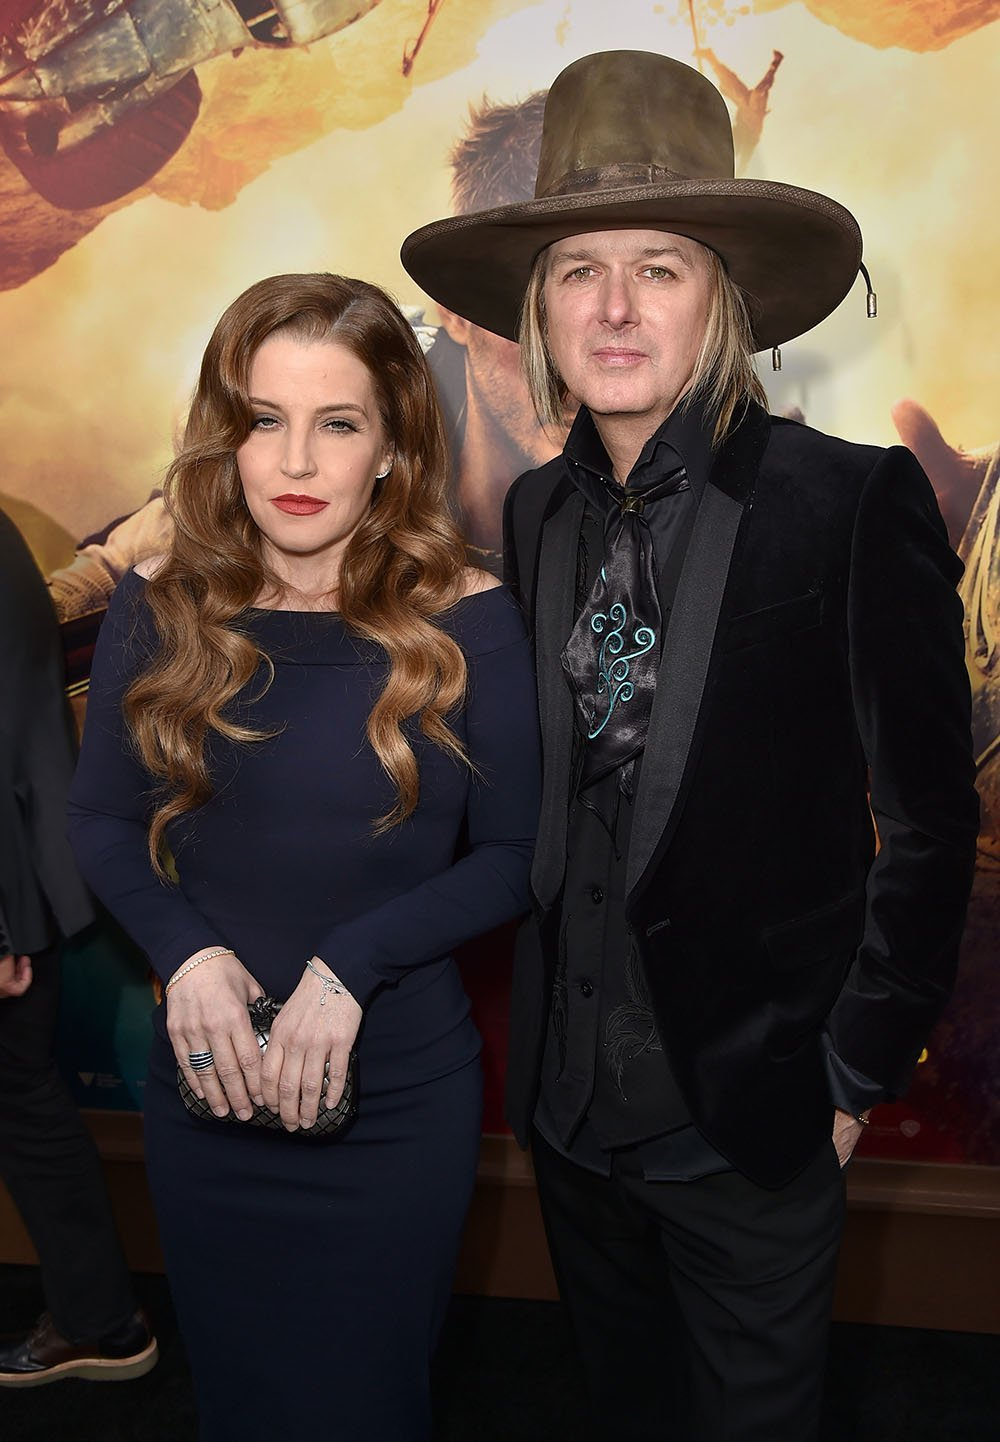 Lisa Marie Presley and Michael Lockwood. I Image: Getty Images.